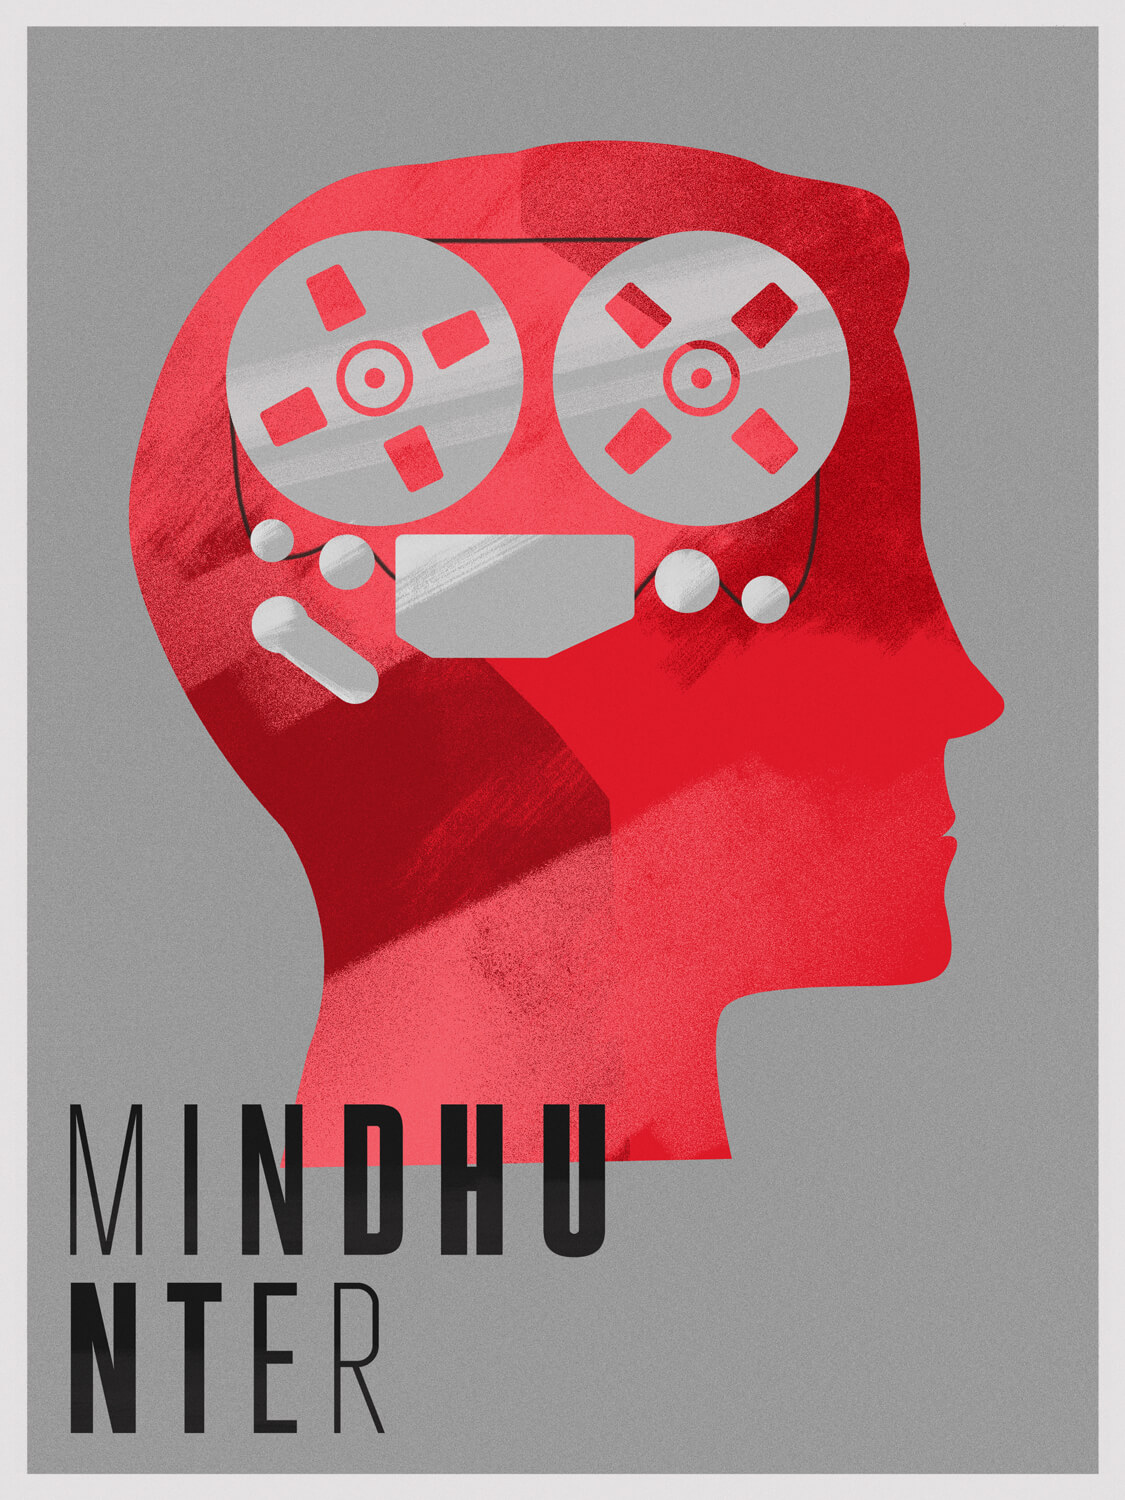 Mindhunter_final_small